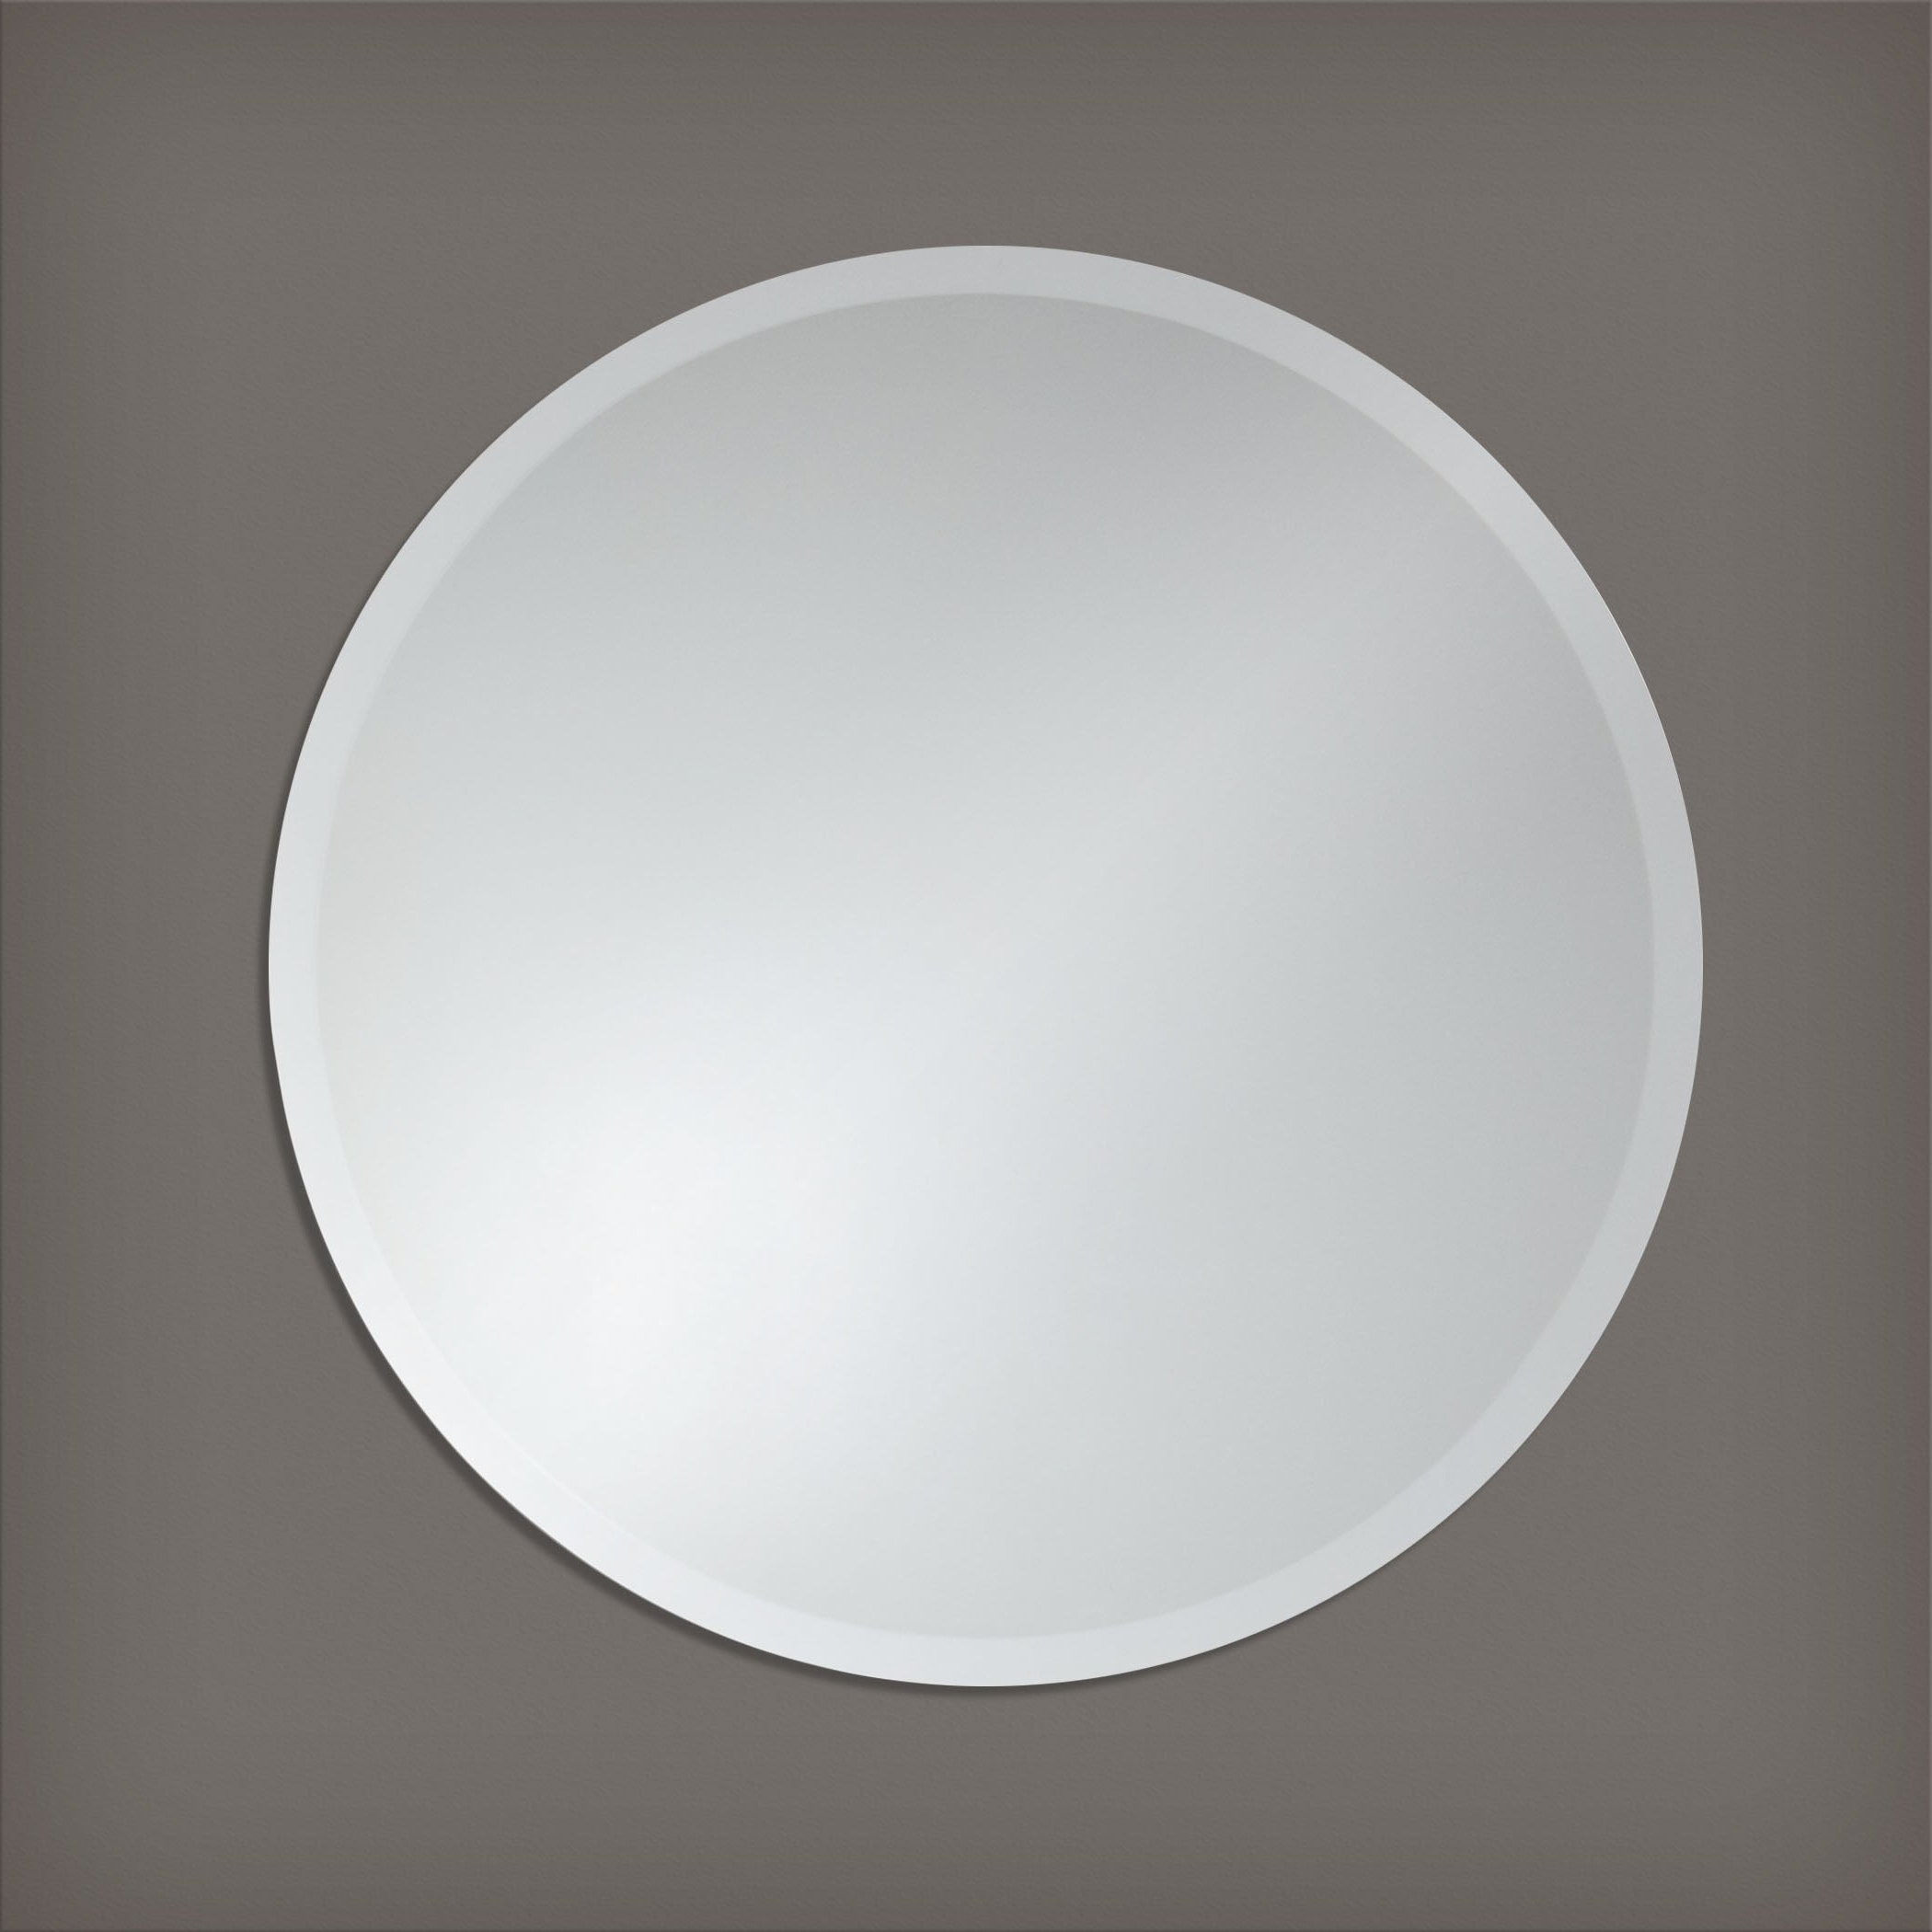 2019 Frameless Beveled Wall Mirrors With Regard To Frameless Round Wall Mirrorthe Better Bevel – Silver (View 18 of 20)